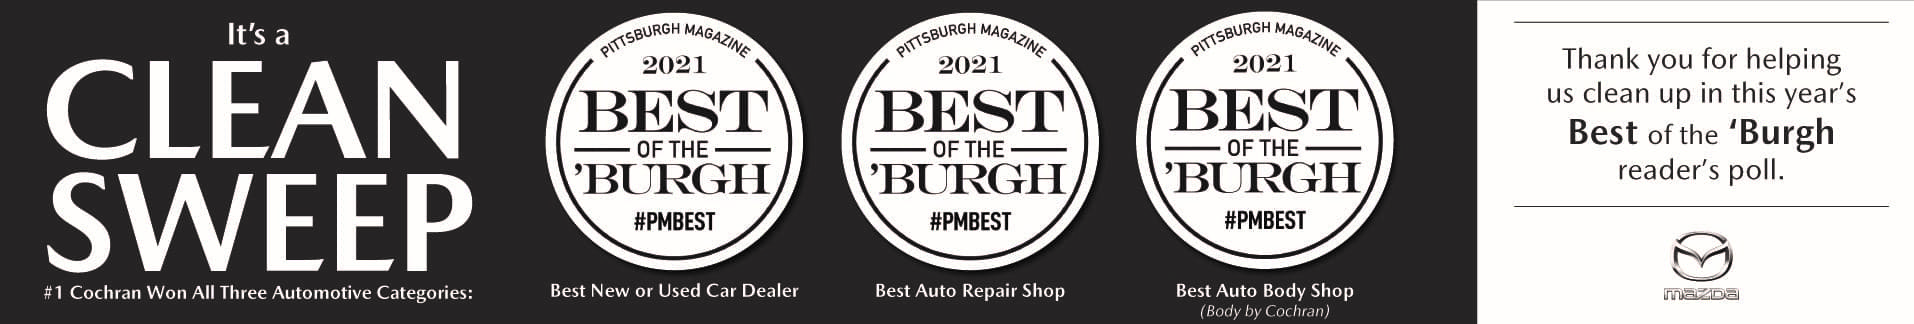 May 2021 Best of the Burgh – Homepage Banners_Mazda